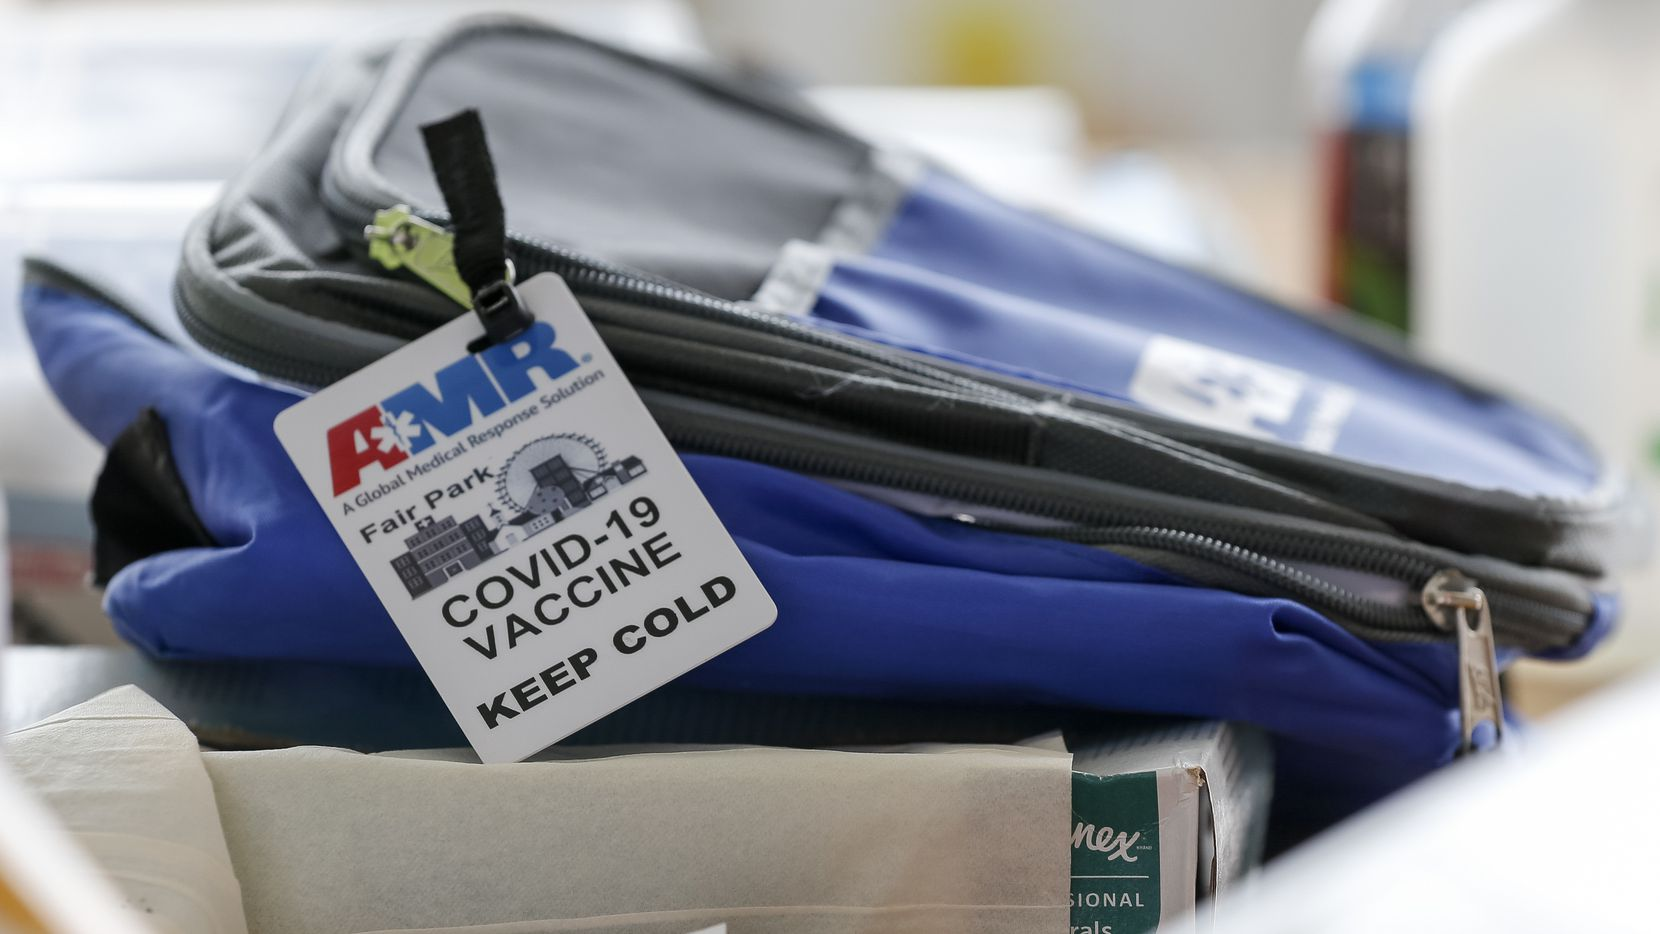 A bag containing COVID-19 vaccines rests on a table during the last day of vaccinations at the drive-thru Fair Park site on Saturday, July 17, 2021, in Dallas. More than 12,000 doses could be administered at the site during its peak. (Elias Valverde II/The Dallas Morning News)